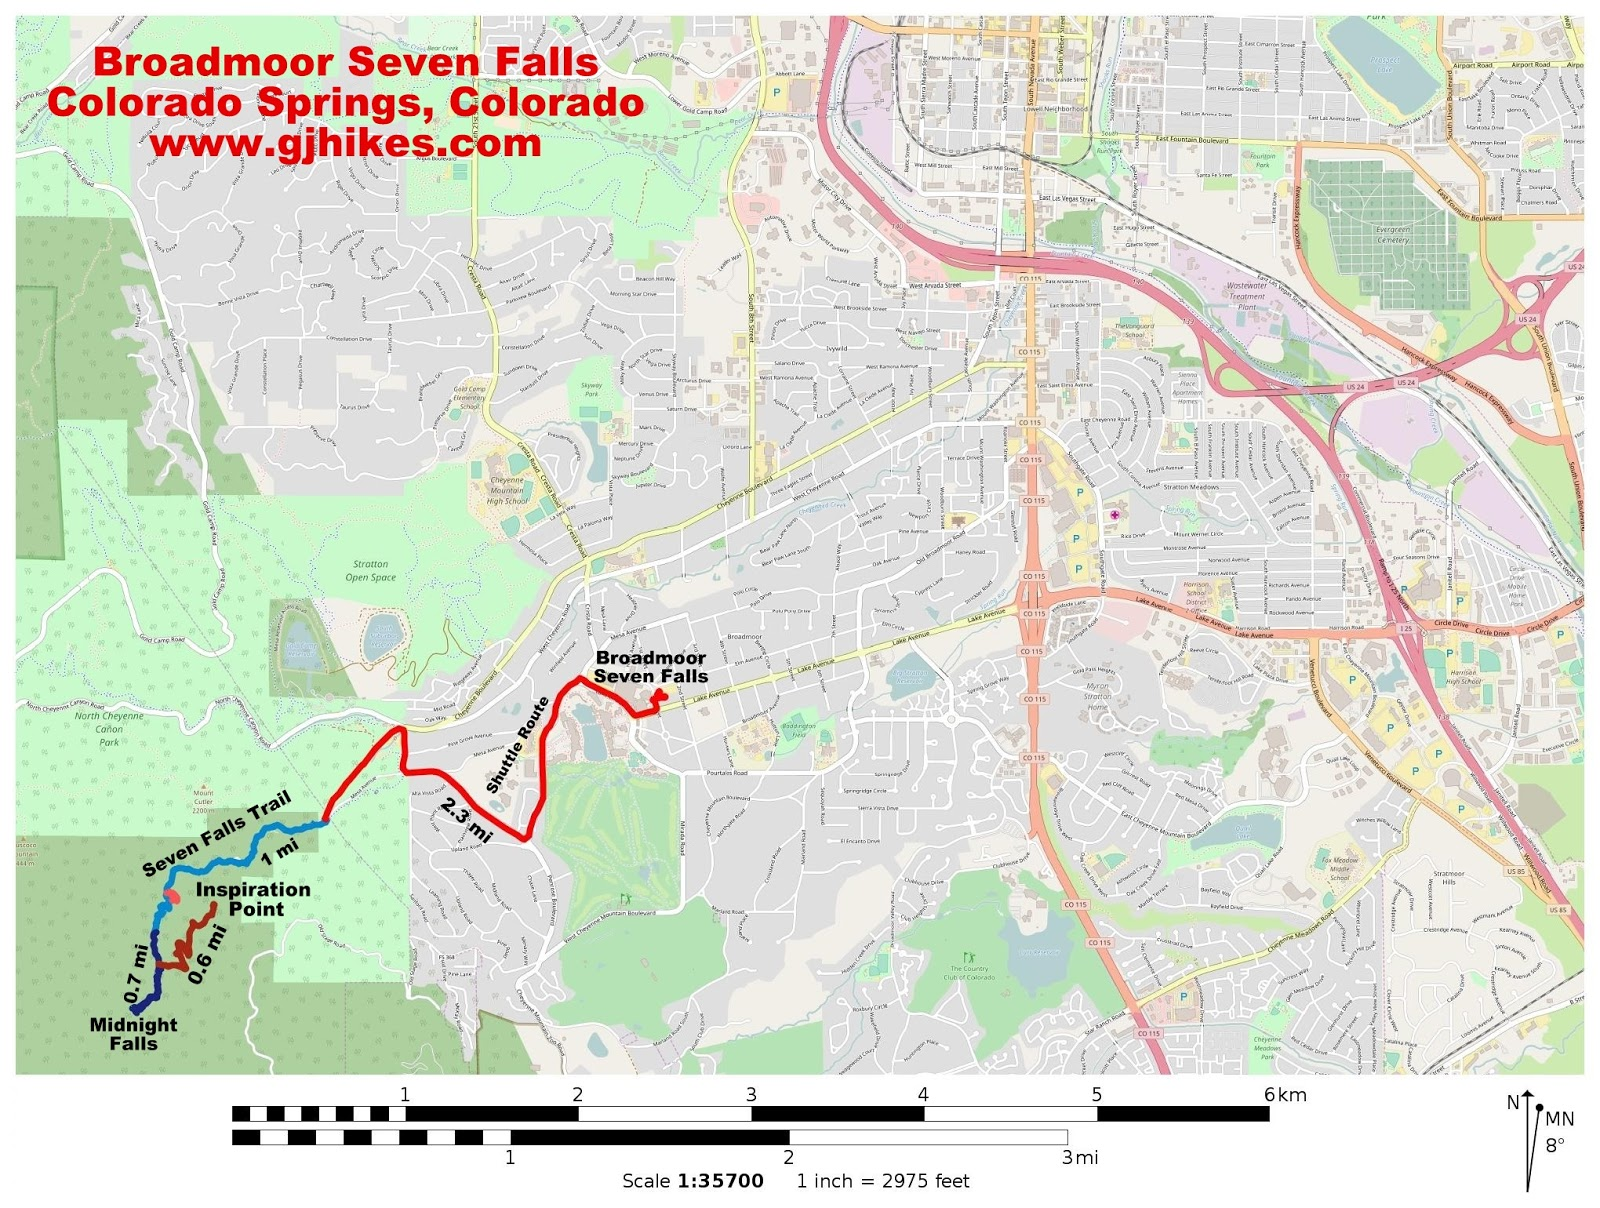 gjhikes.com: Seven Falls on seven springs lodging, alabama state parks map, seven springs snow tubing, 7 springs map, seven springs hotel, seven springs cave creek az, seven springs water park, seven springs hiking, seven springs lodge, seven springs mountain biking, seven springs snowboarding, seven springs resort rooms, seven springs camping, cheyenne mountain complex map, little cottonwood canyon map, seven springs pa, acadia hiking trails map, seven springs logo, seven springs tubing tickets, catalina hiking trails map,